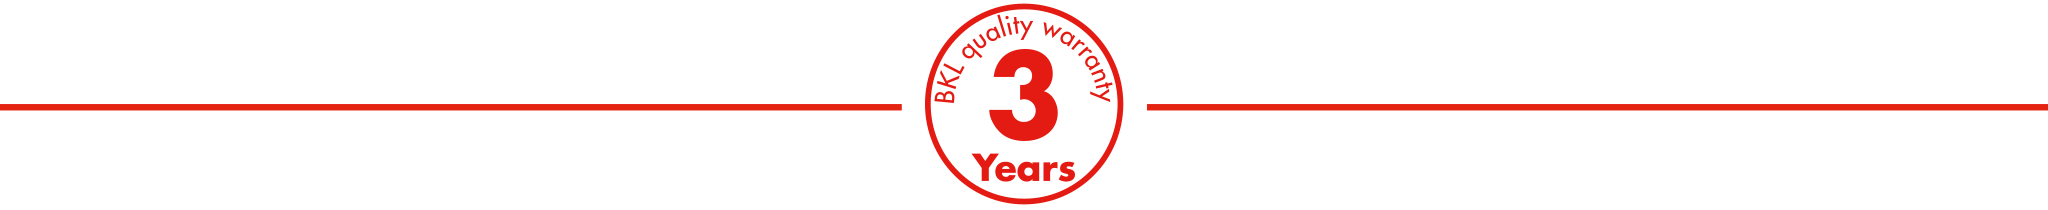 3-year BKL quality warranty for new cranes from the BKL System Cattaneo